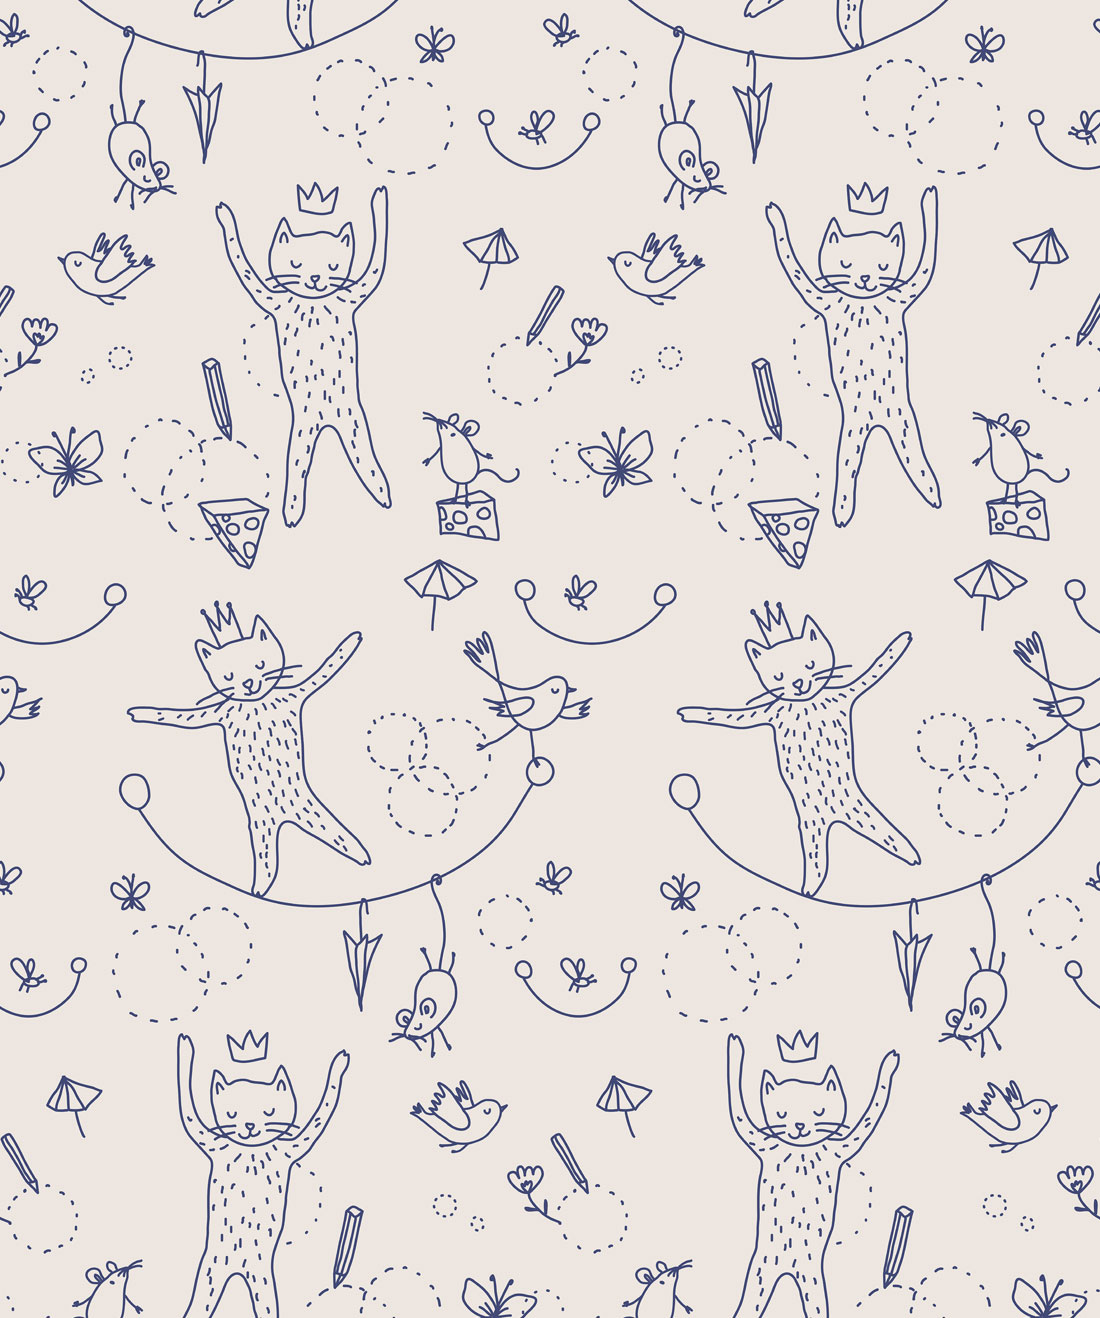 Mice & Cats Wallpaper